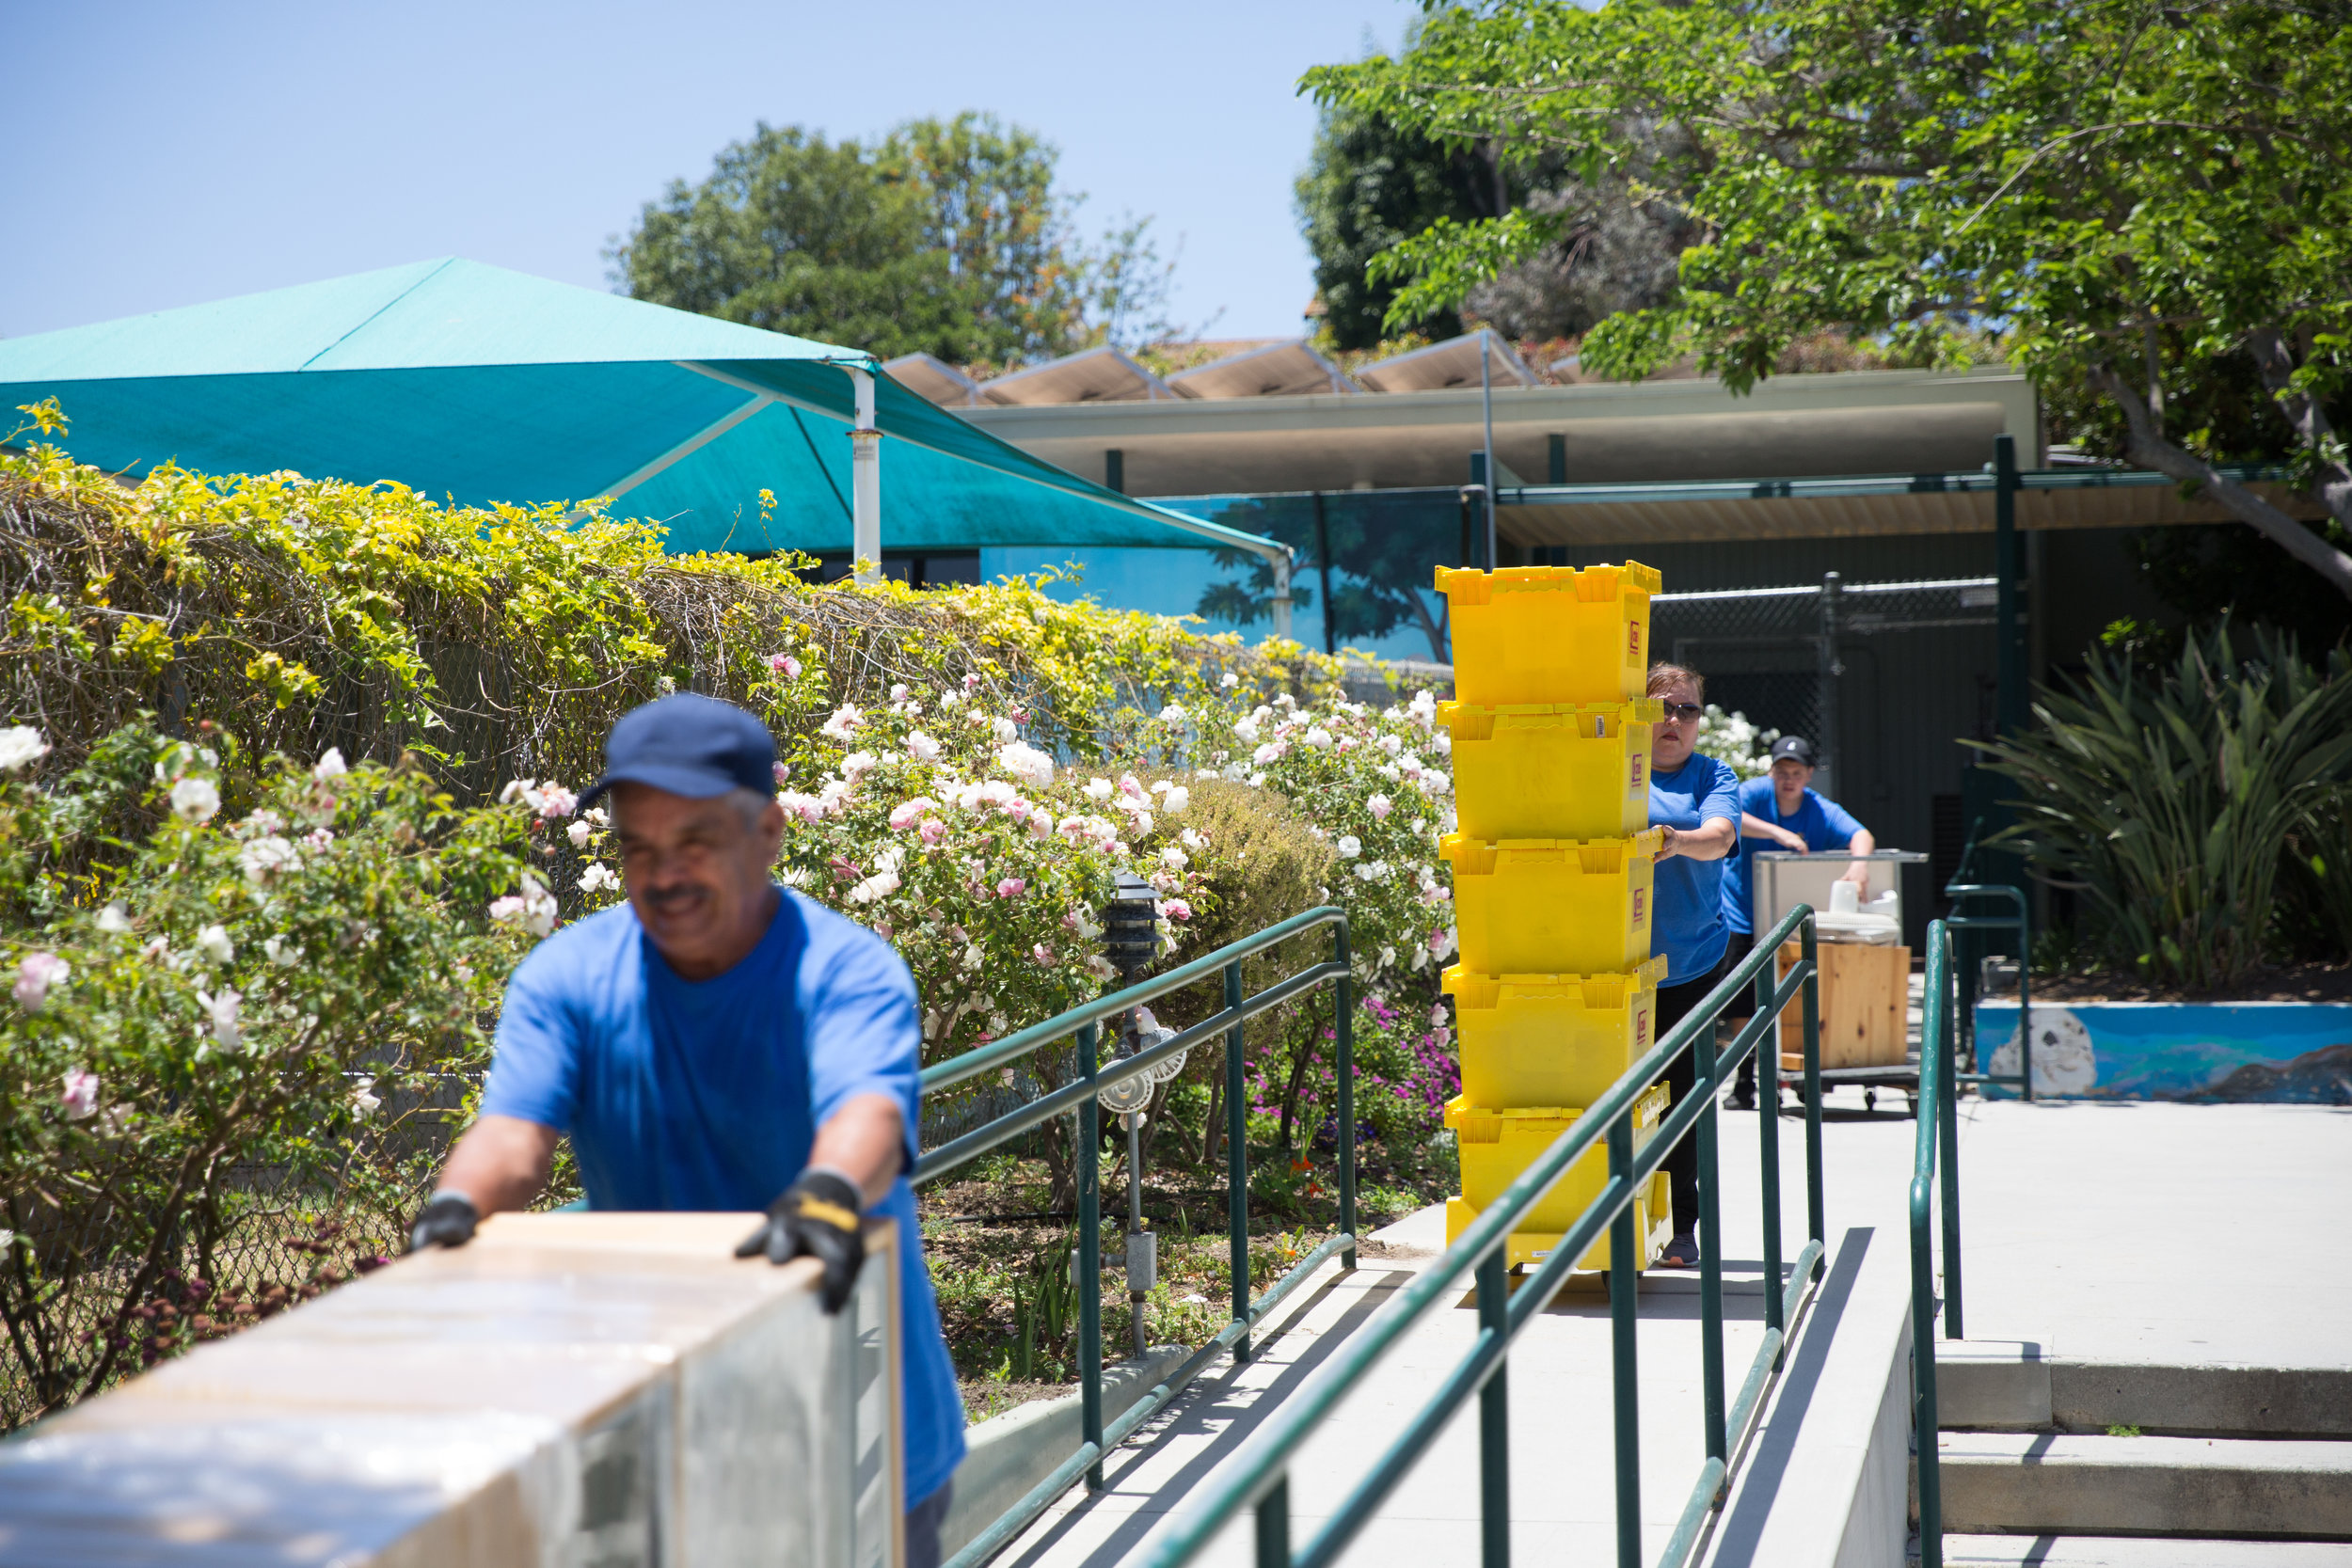 Point Dume Marine Science Elementary School undergoes planned renovations during summer 2018, part of a district-wide project that has brought cosmetic and moderate repairs to numerous SMMUSD campuses. Officials say the fixes will help support the planned merger in 2019.